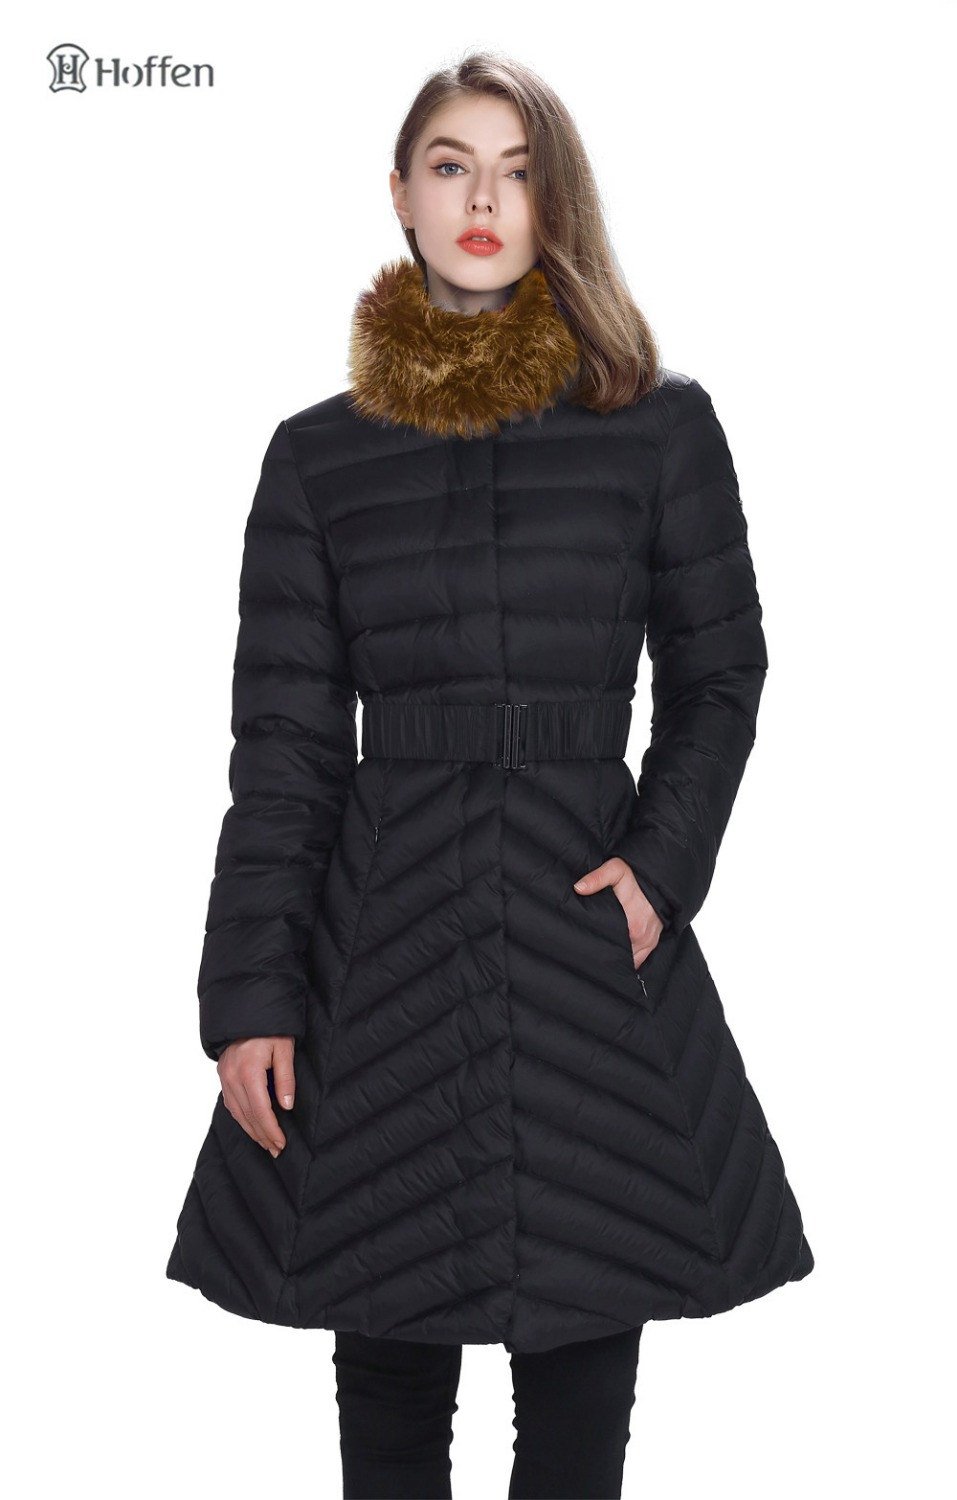 Hoffen 2016 New Arrival A-Line Womens Long   Down     Coat   Removable Collar with Real Raccoon Fur Warm Parkas For Women Winter B006577